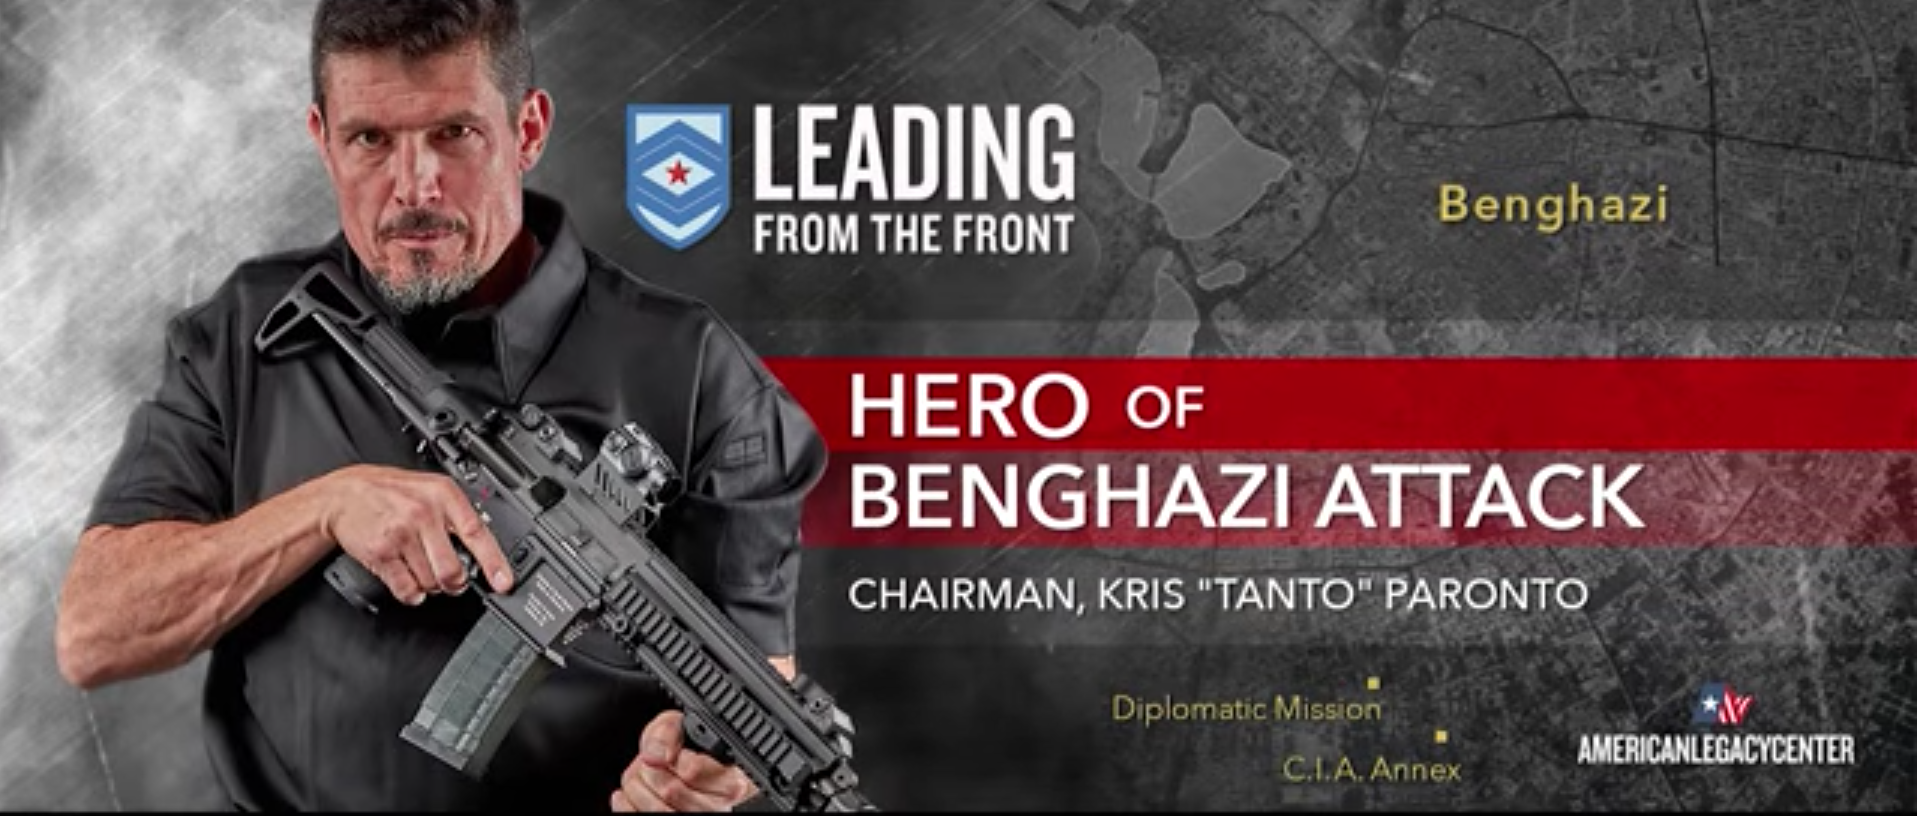 """Benghazi Hero Kris """"Tanto"""" Paronto Launches New Campaign To Attack Hillary Clinton And Radical Islam Featured"""